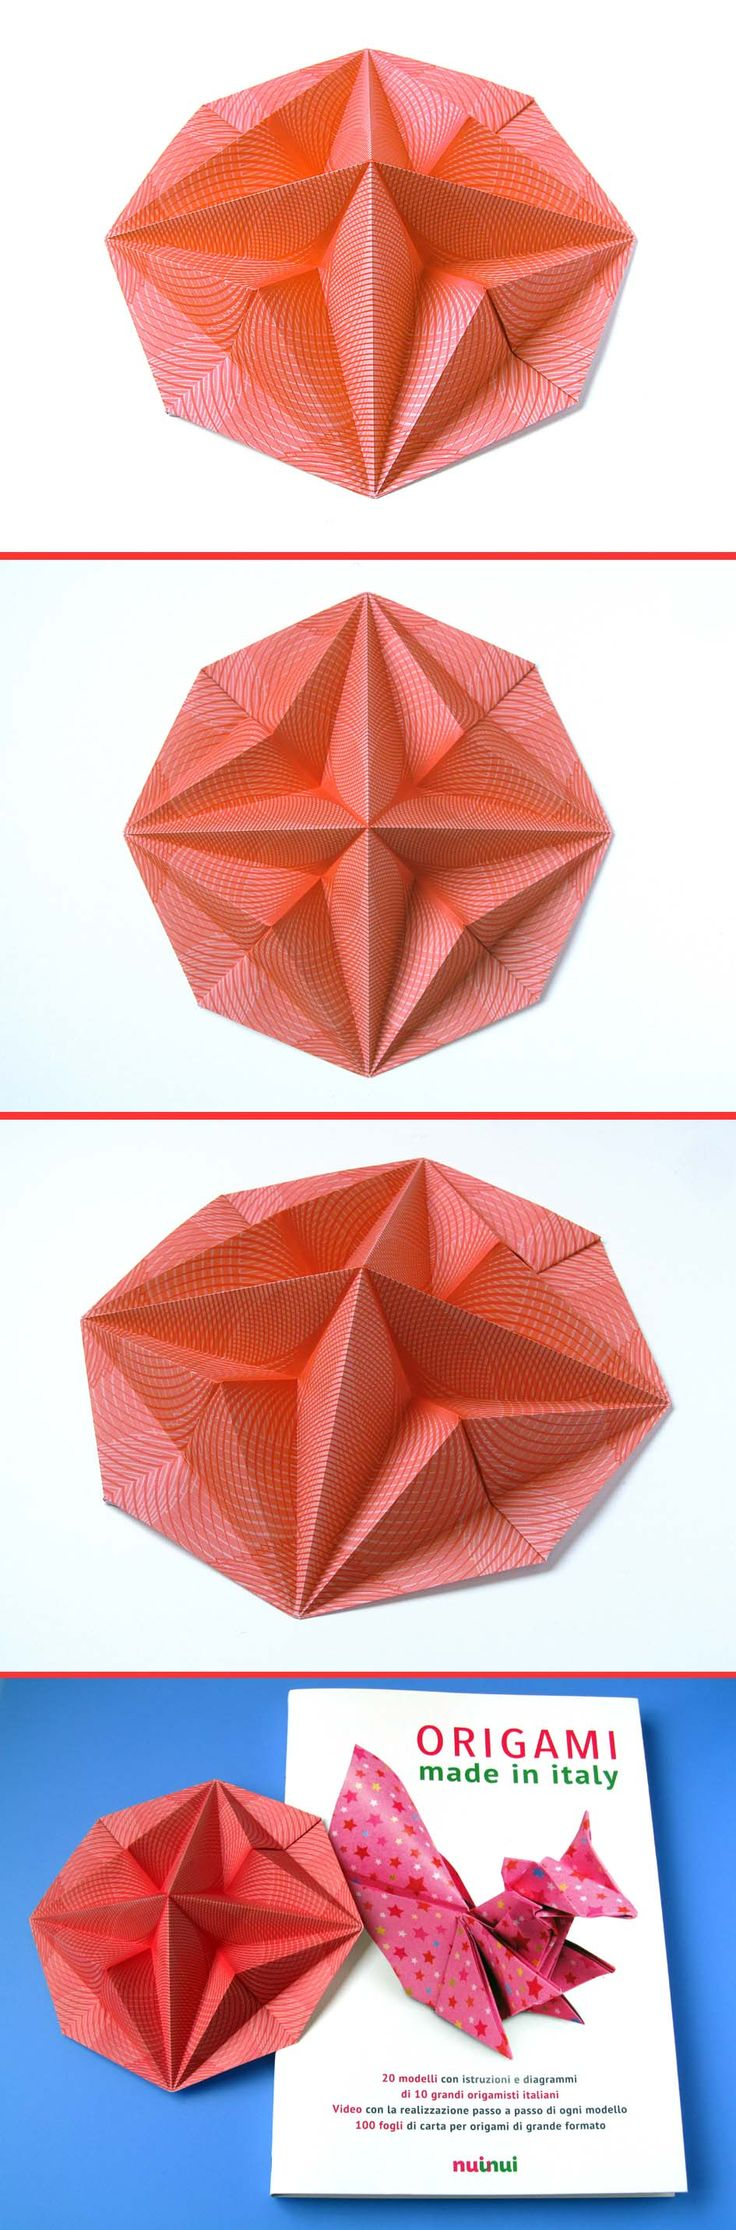 Stella in ottagono 2 - Octagonal Star 2: designed (August 2007) and folded by Francesco Guarnieri. From one uncut square of paper, 17,8 x 17,8 cm. Diagrams: Origami Made in Italy, NuiNui: http://www.nuinui.ch/book/origami-made-in-italy/?id=44 More information: http://guarnieri-origami.blogspot.it/2012/12/stella-in-ottagono-2.html